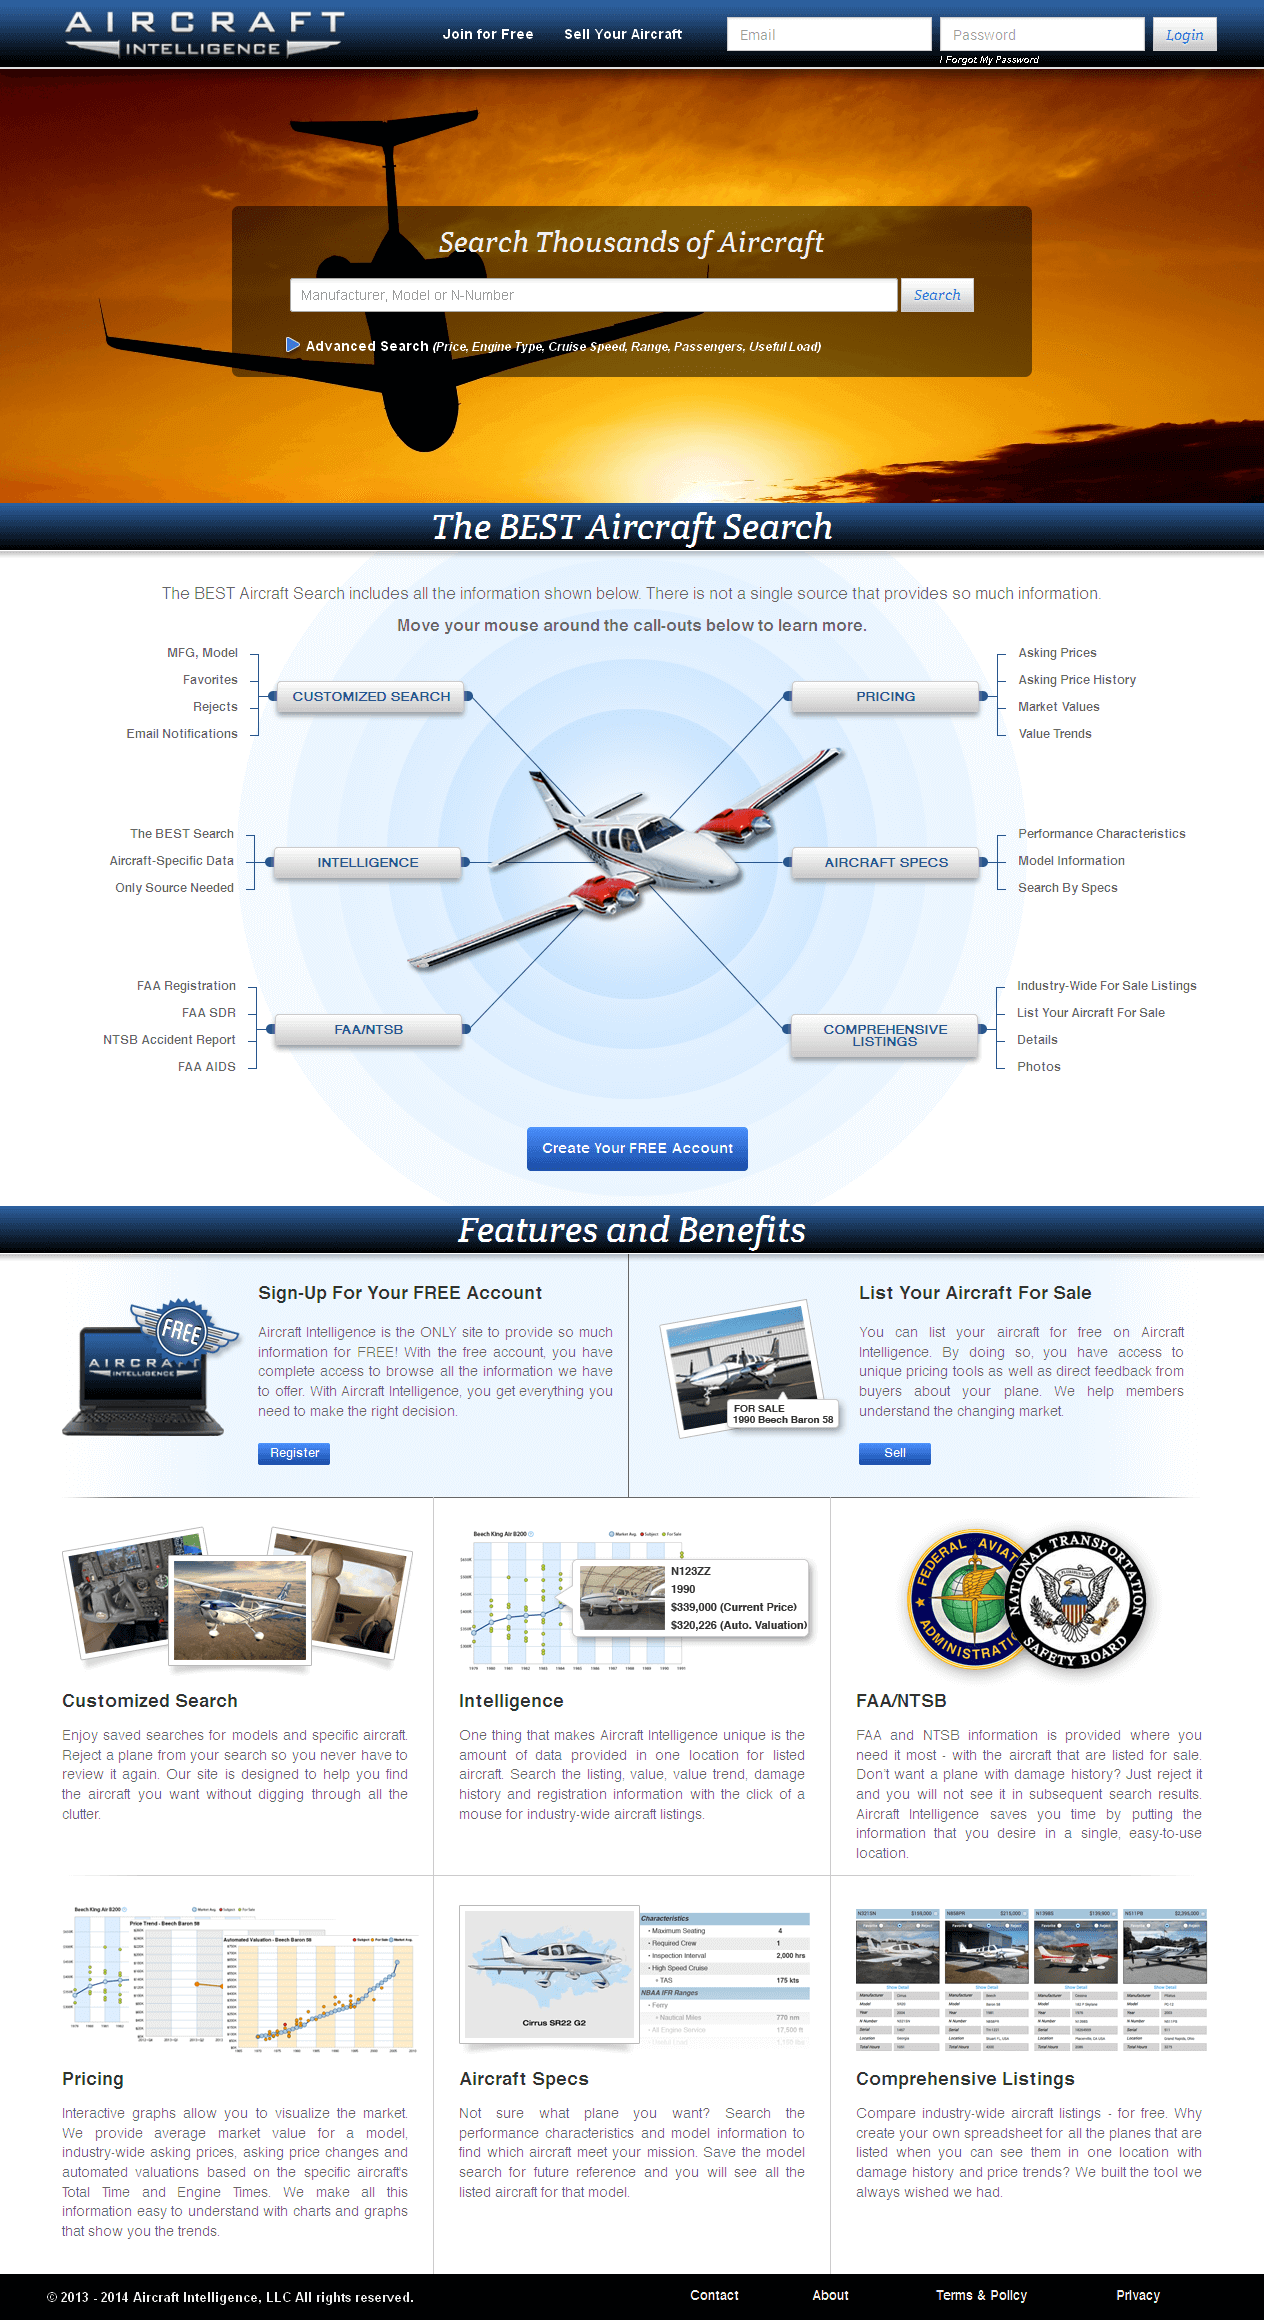 Website for 'Aircraft Intelligence' Using HTML - Aircraft Search Engine